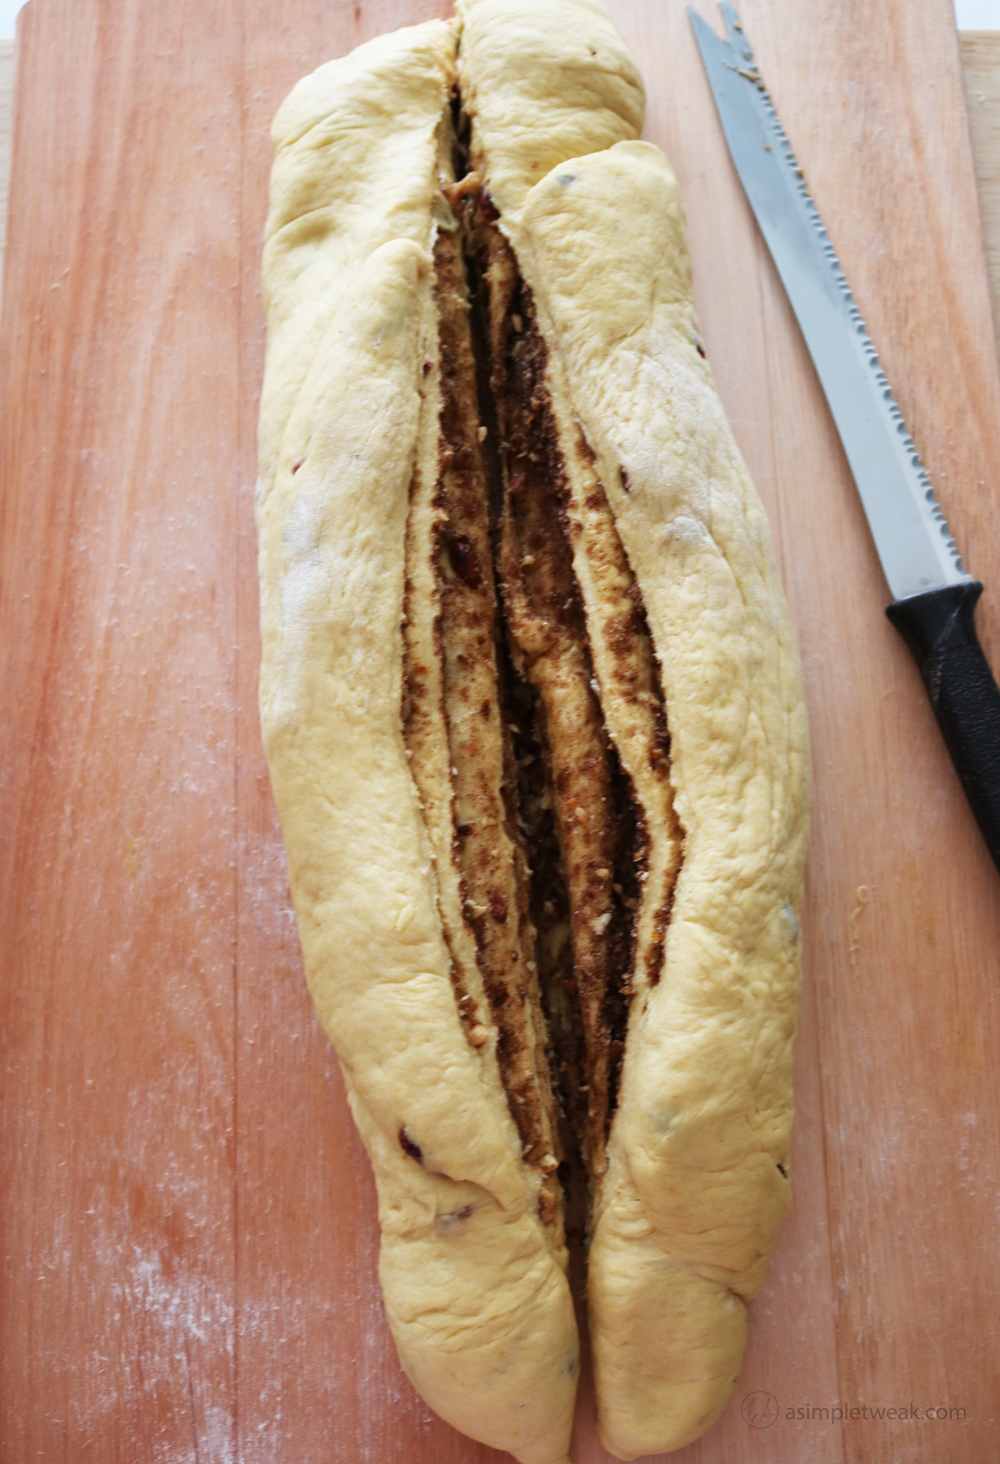 The-bread-is-soft,-fluffy-and-It-has-a-warming-tasty-cinnamon-filling-that-makes-it-the-perfect-fall-treat